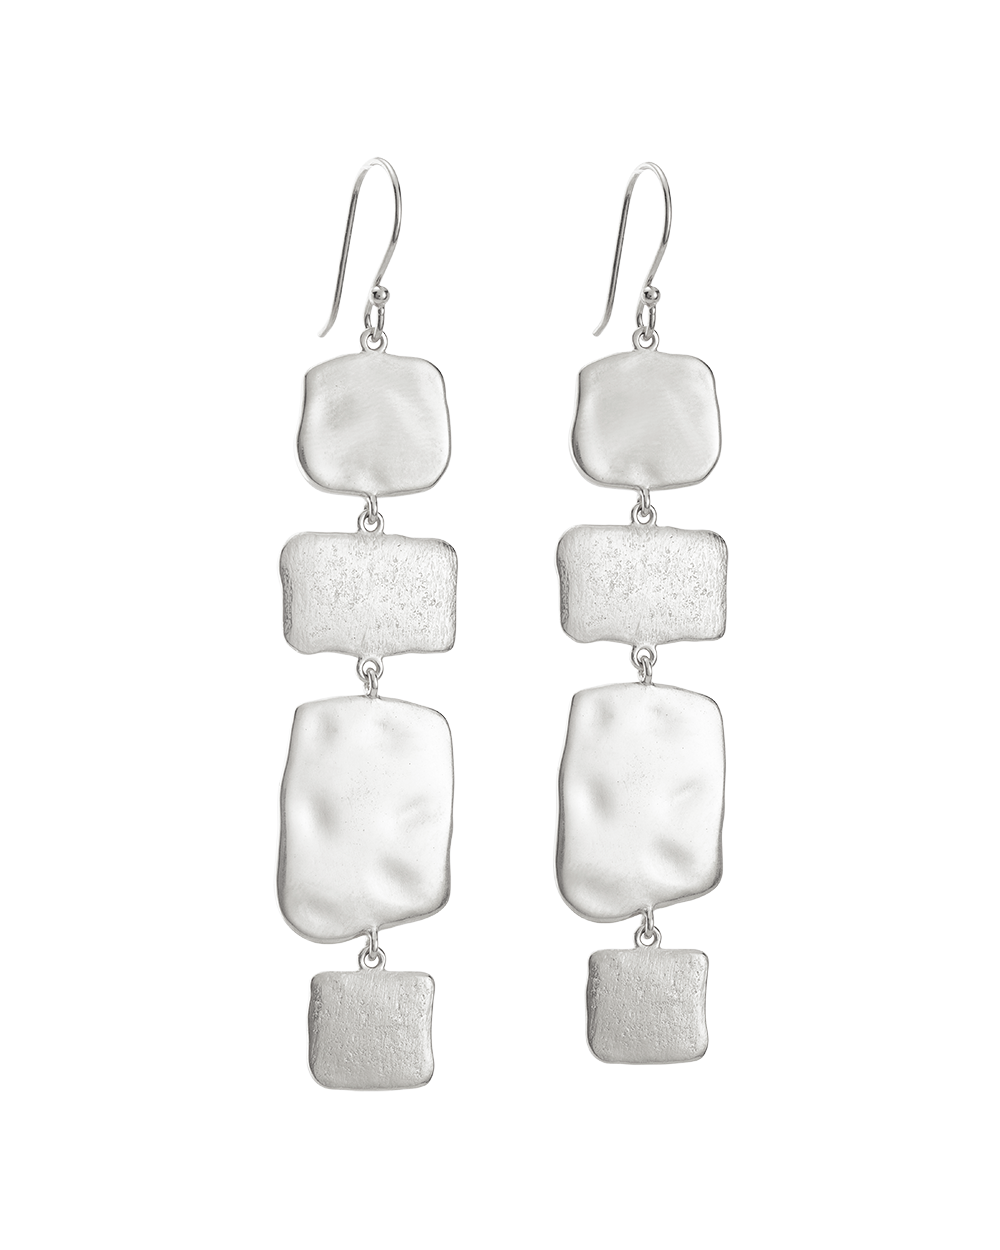 CASCADE EARRINGS (STERLING SIlVER) - FRONT